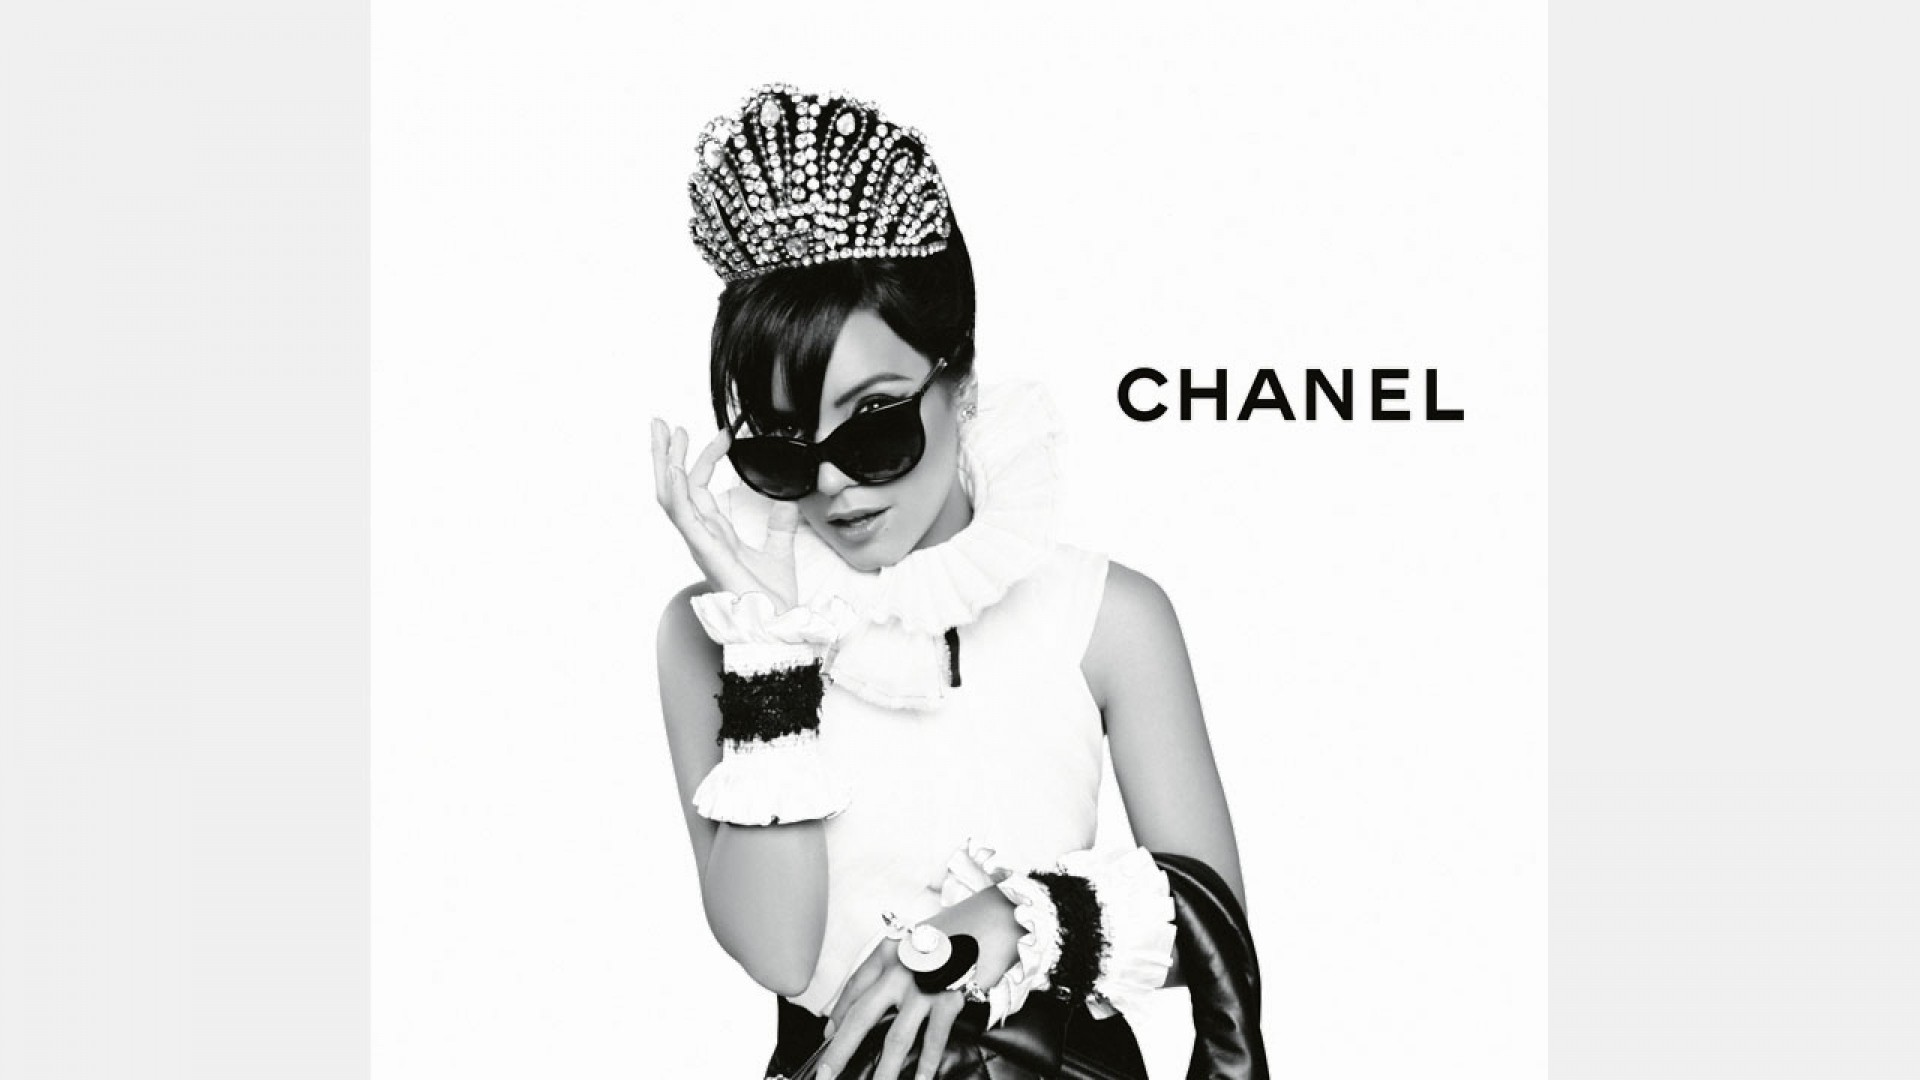 1920x1080 Preview chanel